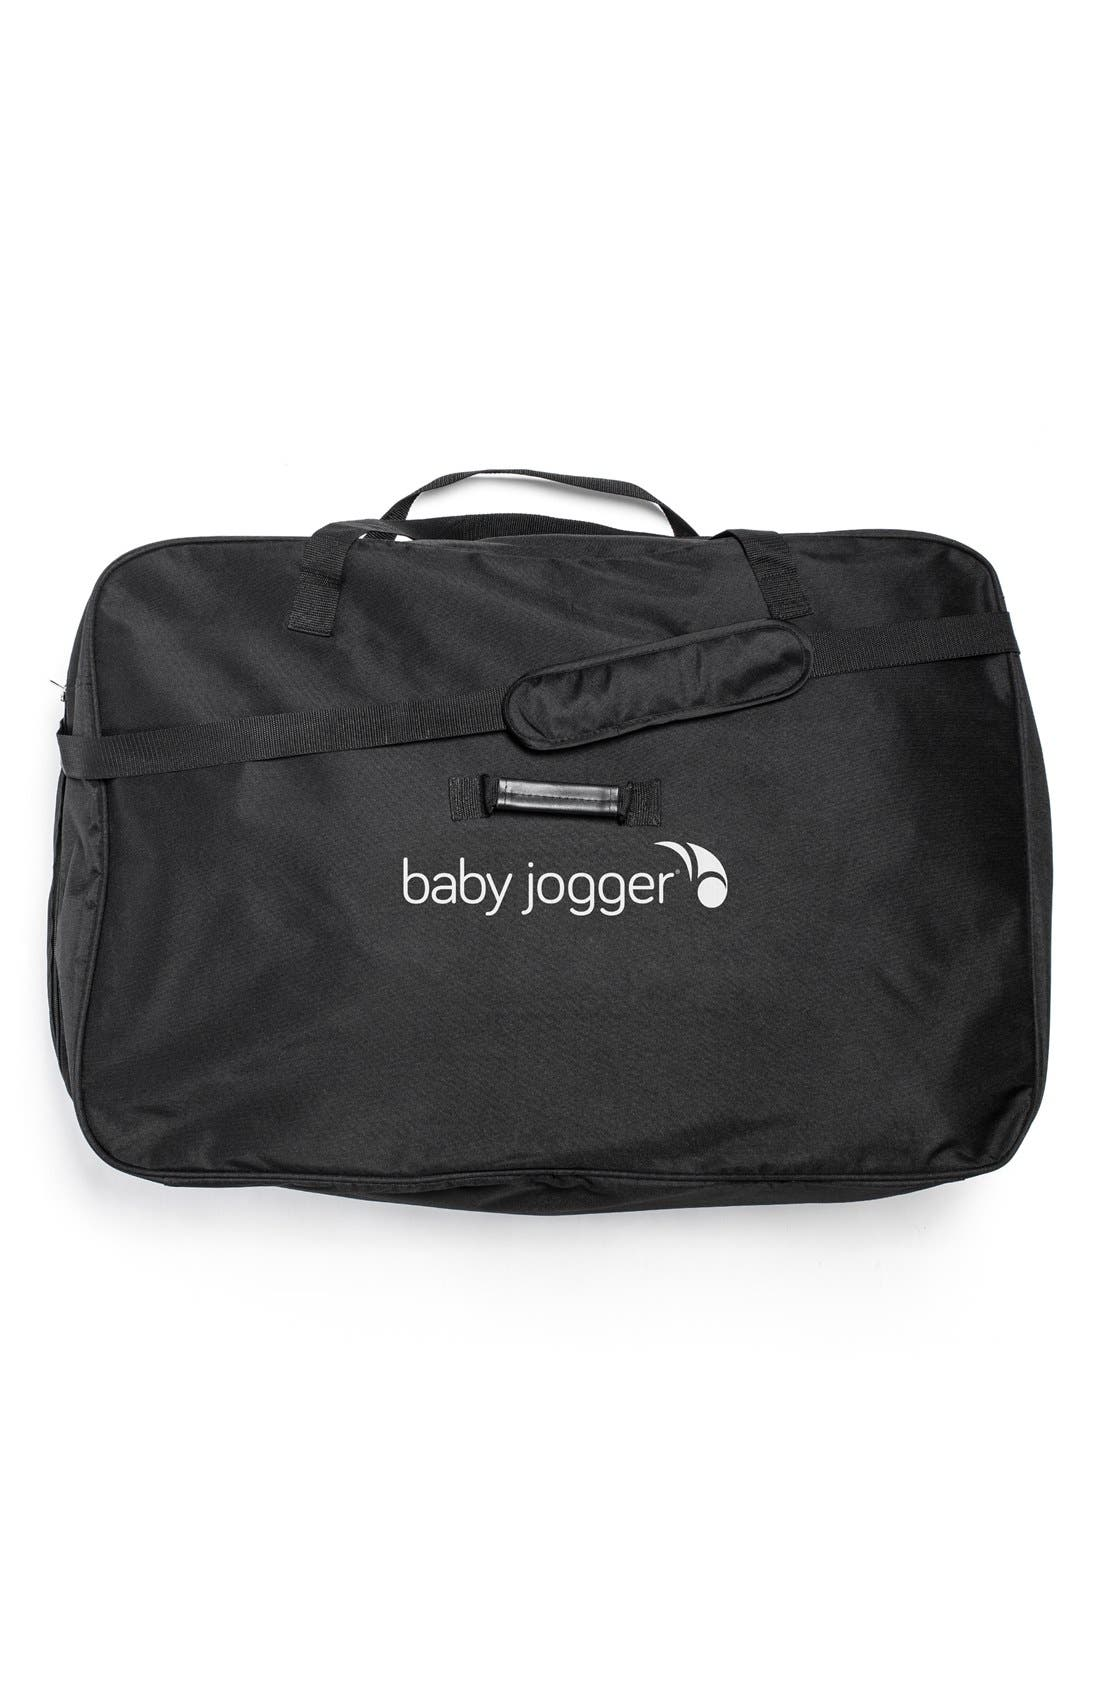 Alternate Image 1 Selected - Baby Jogger 'City Select™' Stroller Carry Bag